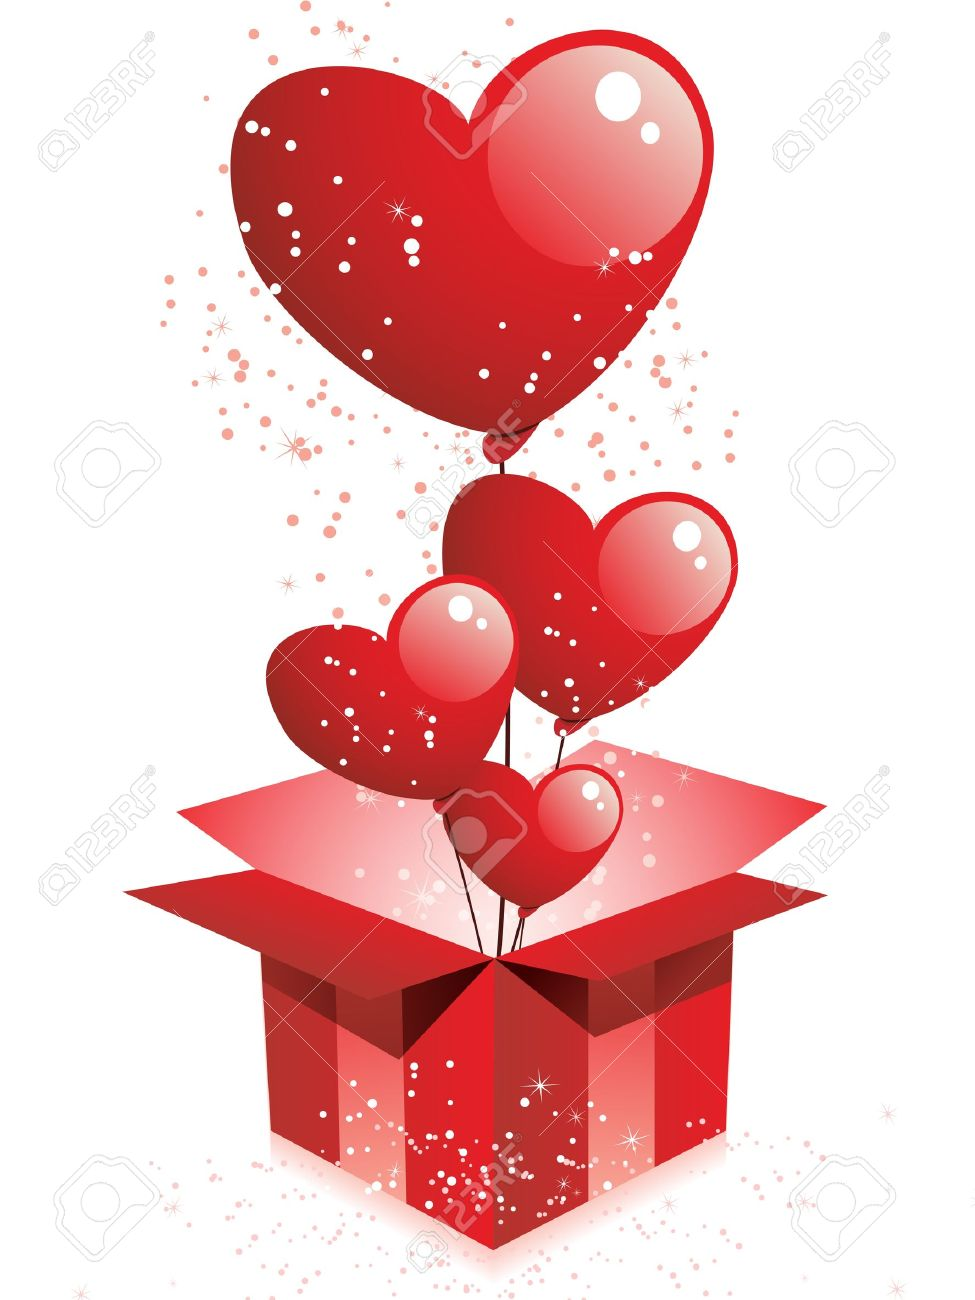 excellent happy valentines day gifts ideas valentine gift ideas briotelcom - Happy Valentine S Day